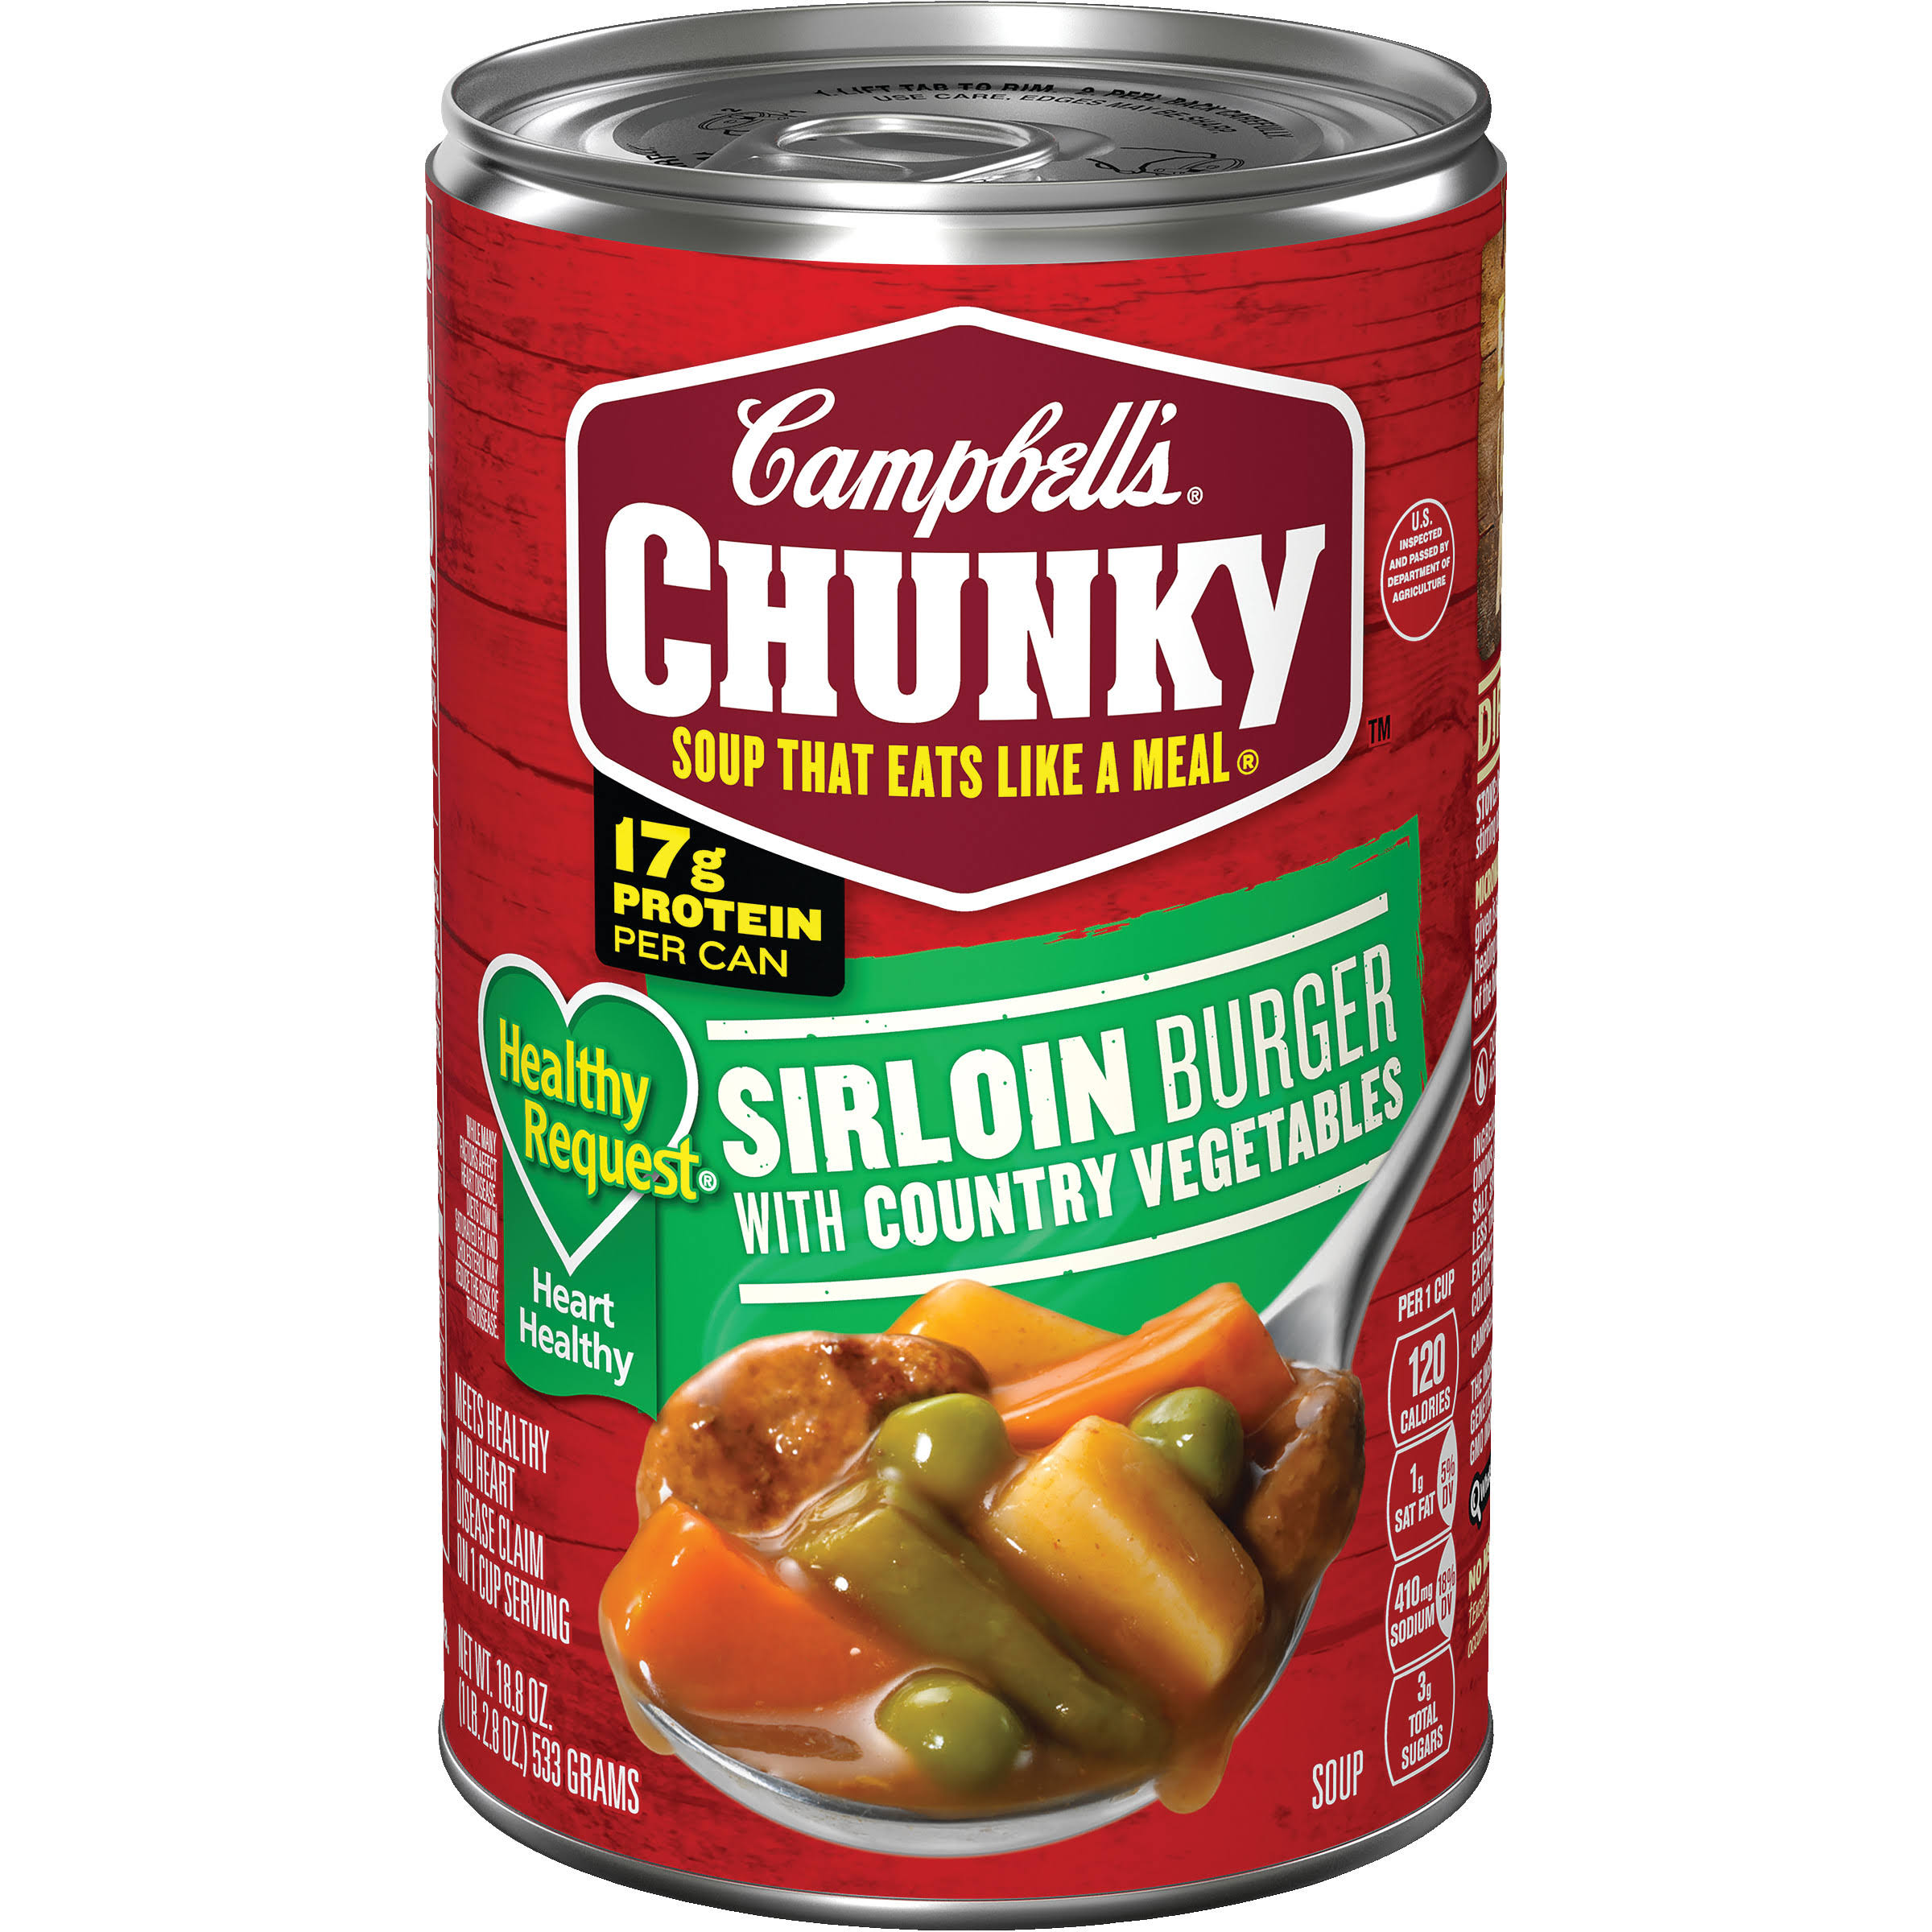 Campbell's Chunky Healthy Request Soup - Sirloin Burger With Country Vegetables, 18.8oz